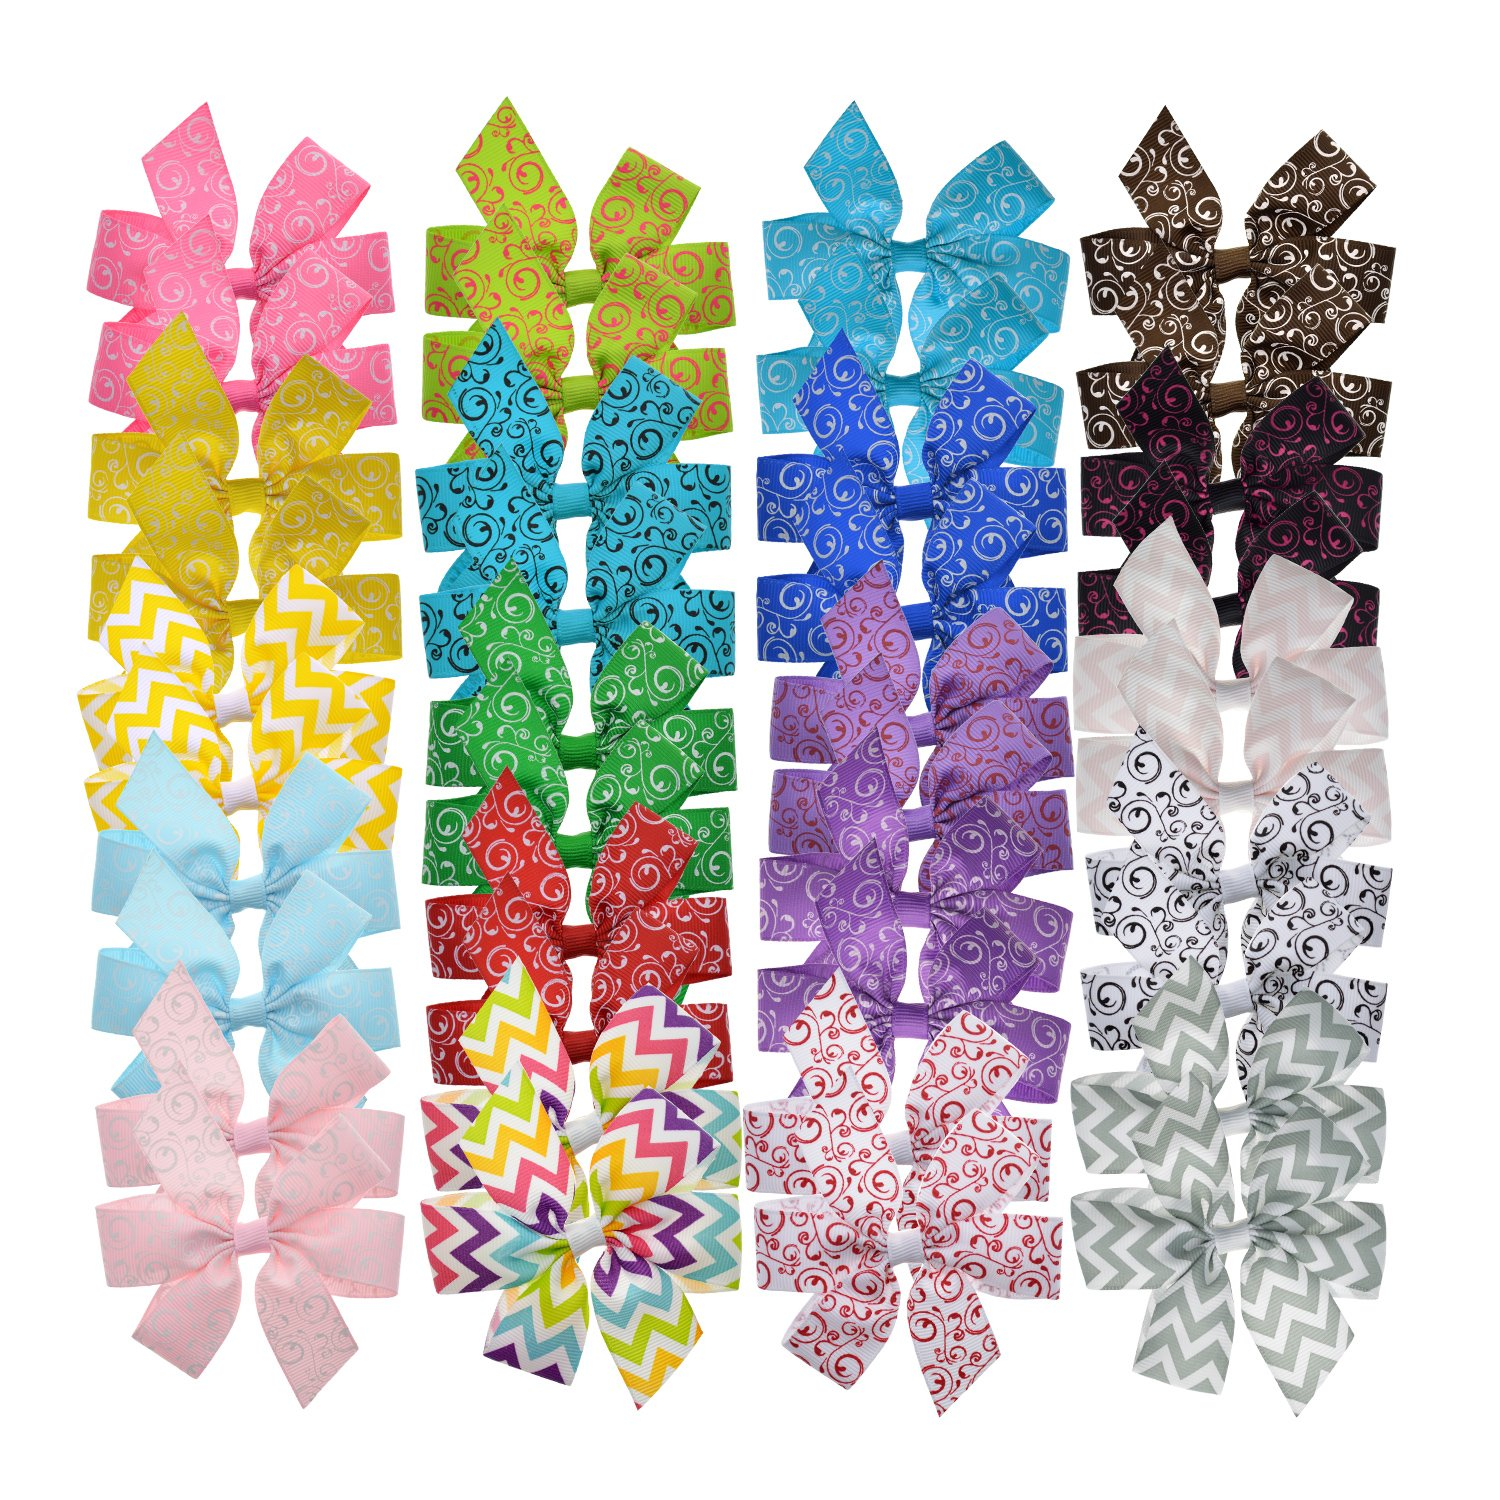 Lclhb 20pcs 3.5-4'' Baby Children Grosgrain Ribbon Big Hair Bows Hair Clips with Clip Hw07 (HW0703)